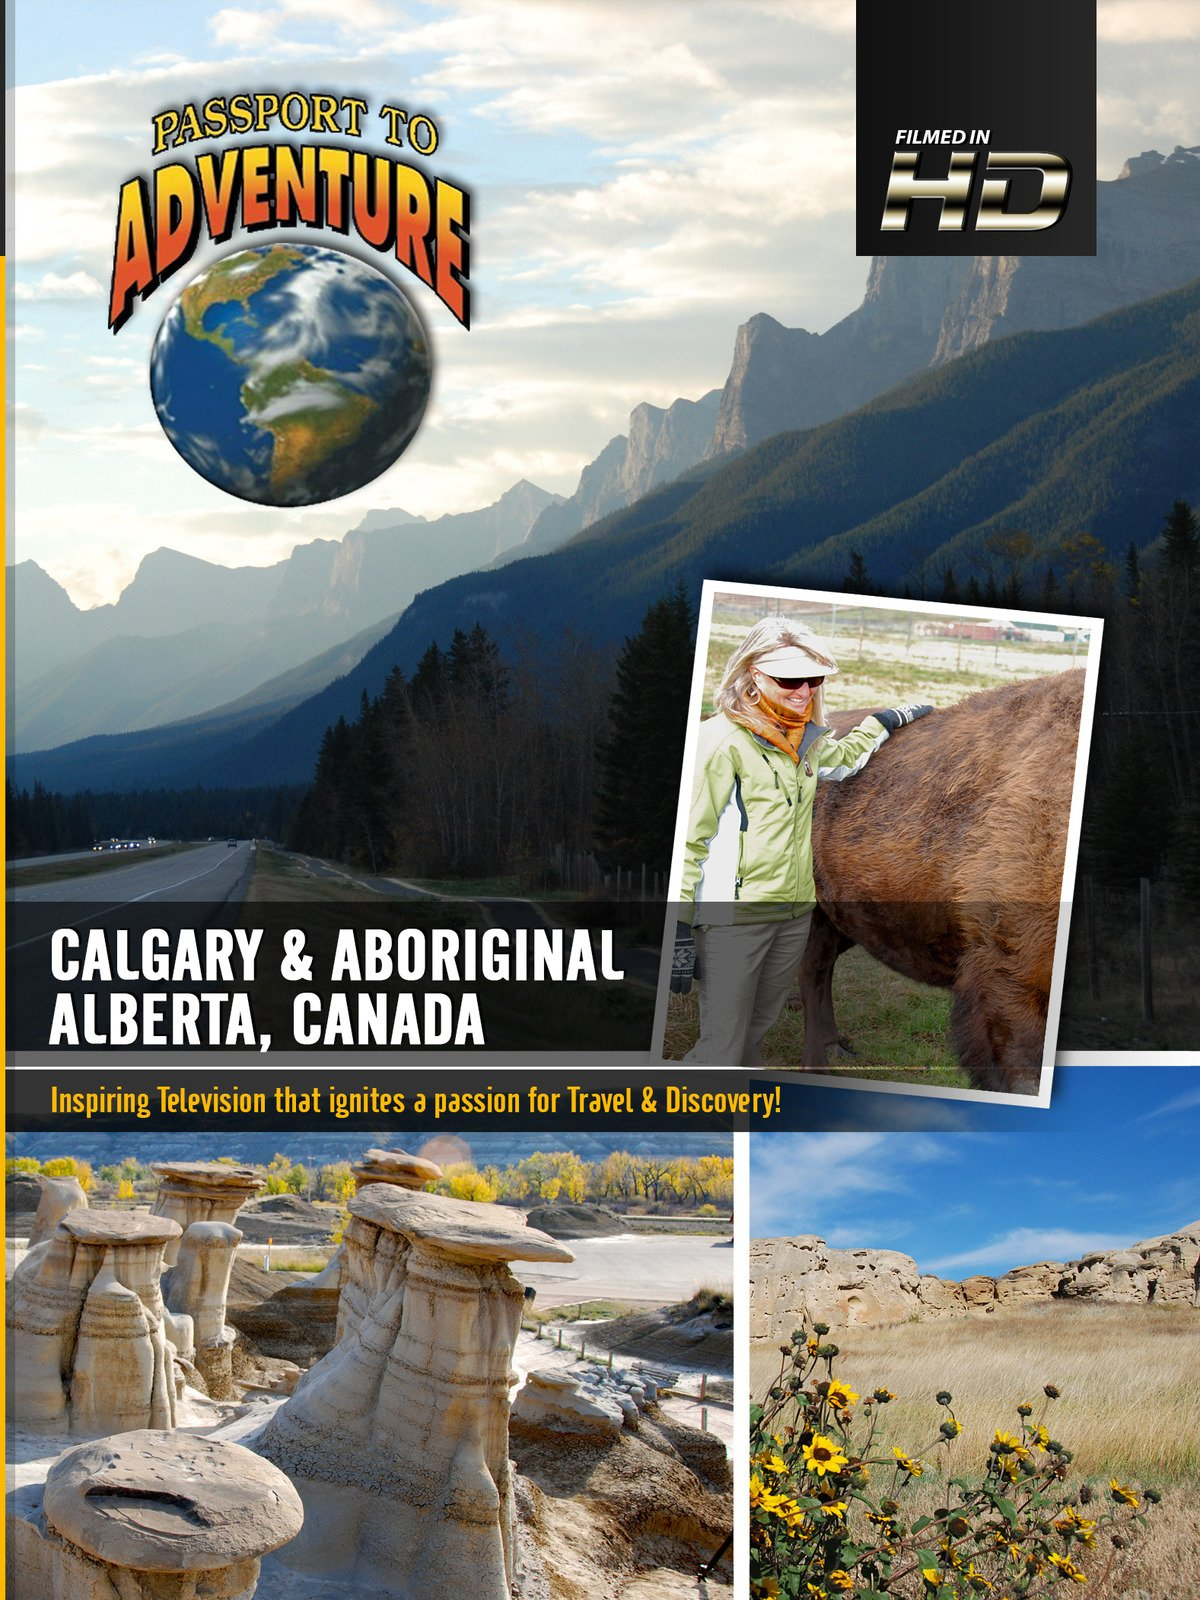 Passport to Adventure - Calgary & Aboriginal Alberta; Canada